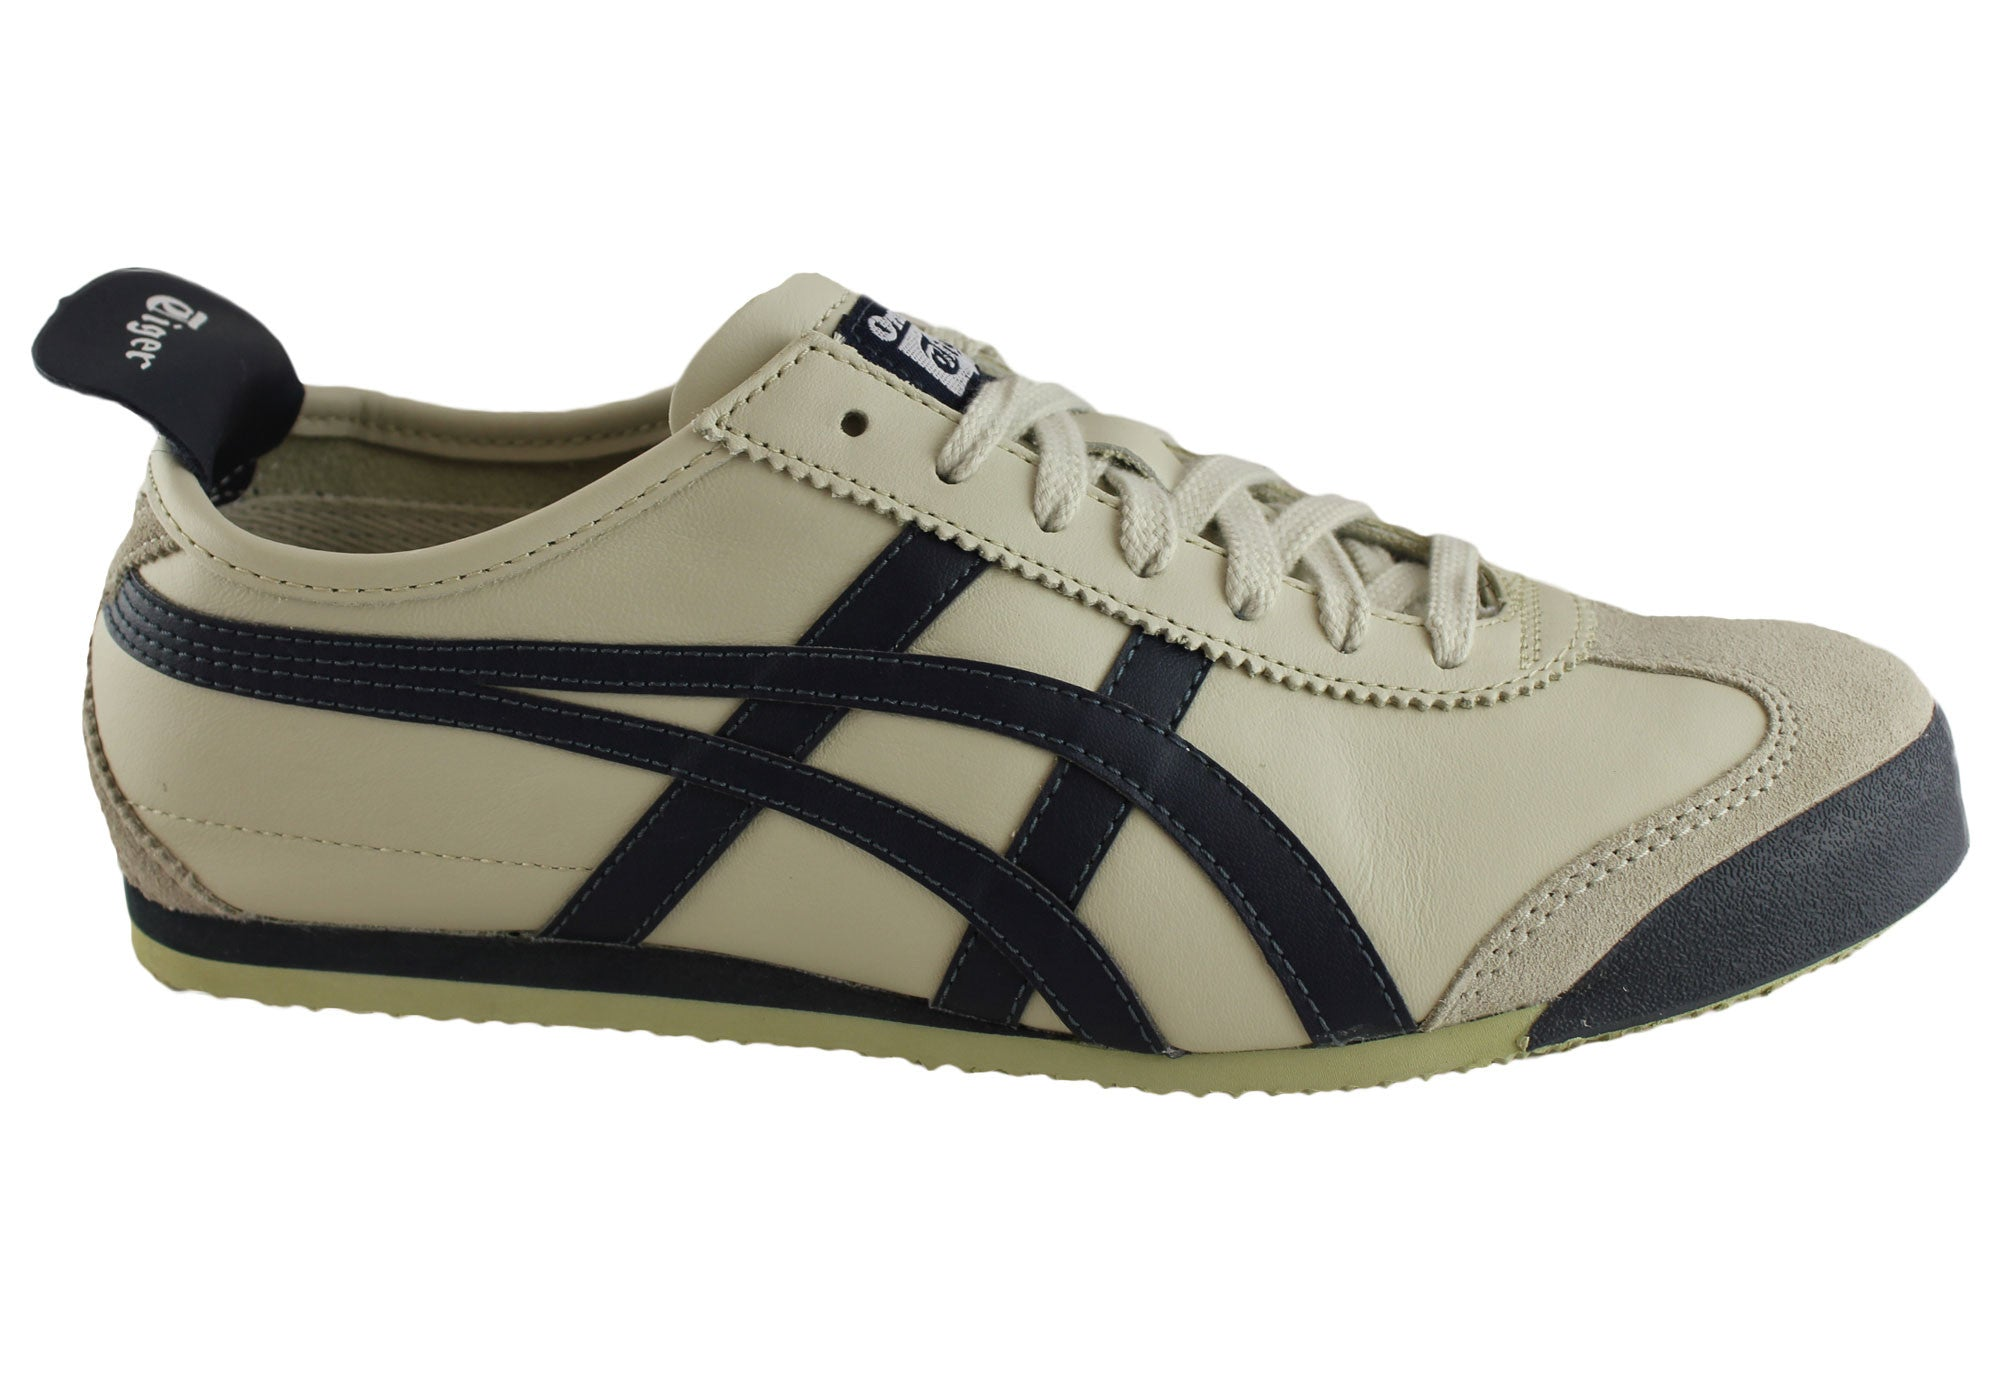 Asics Onitsuka Tiger Mexico 66 Mens Shoes   Brand House Direct